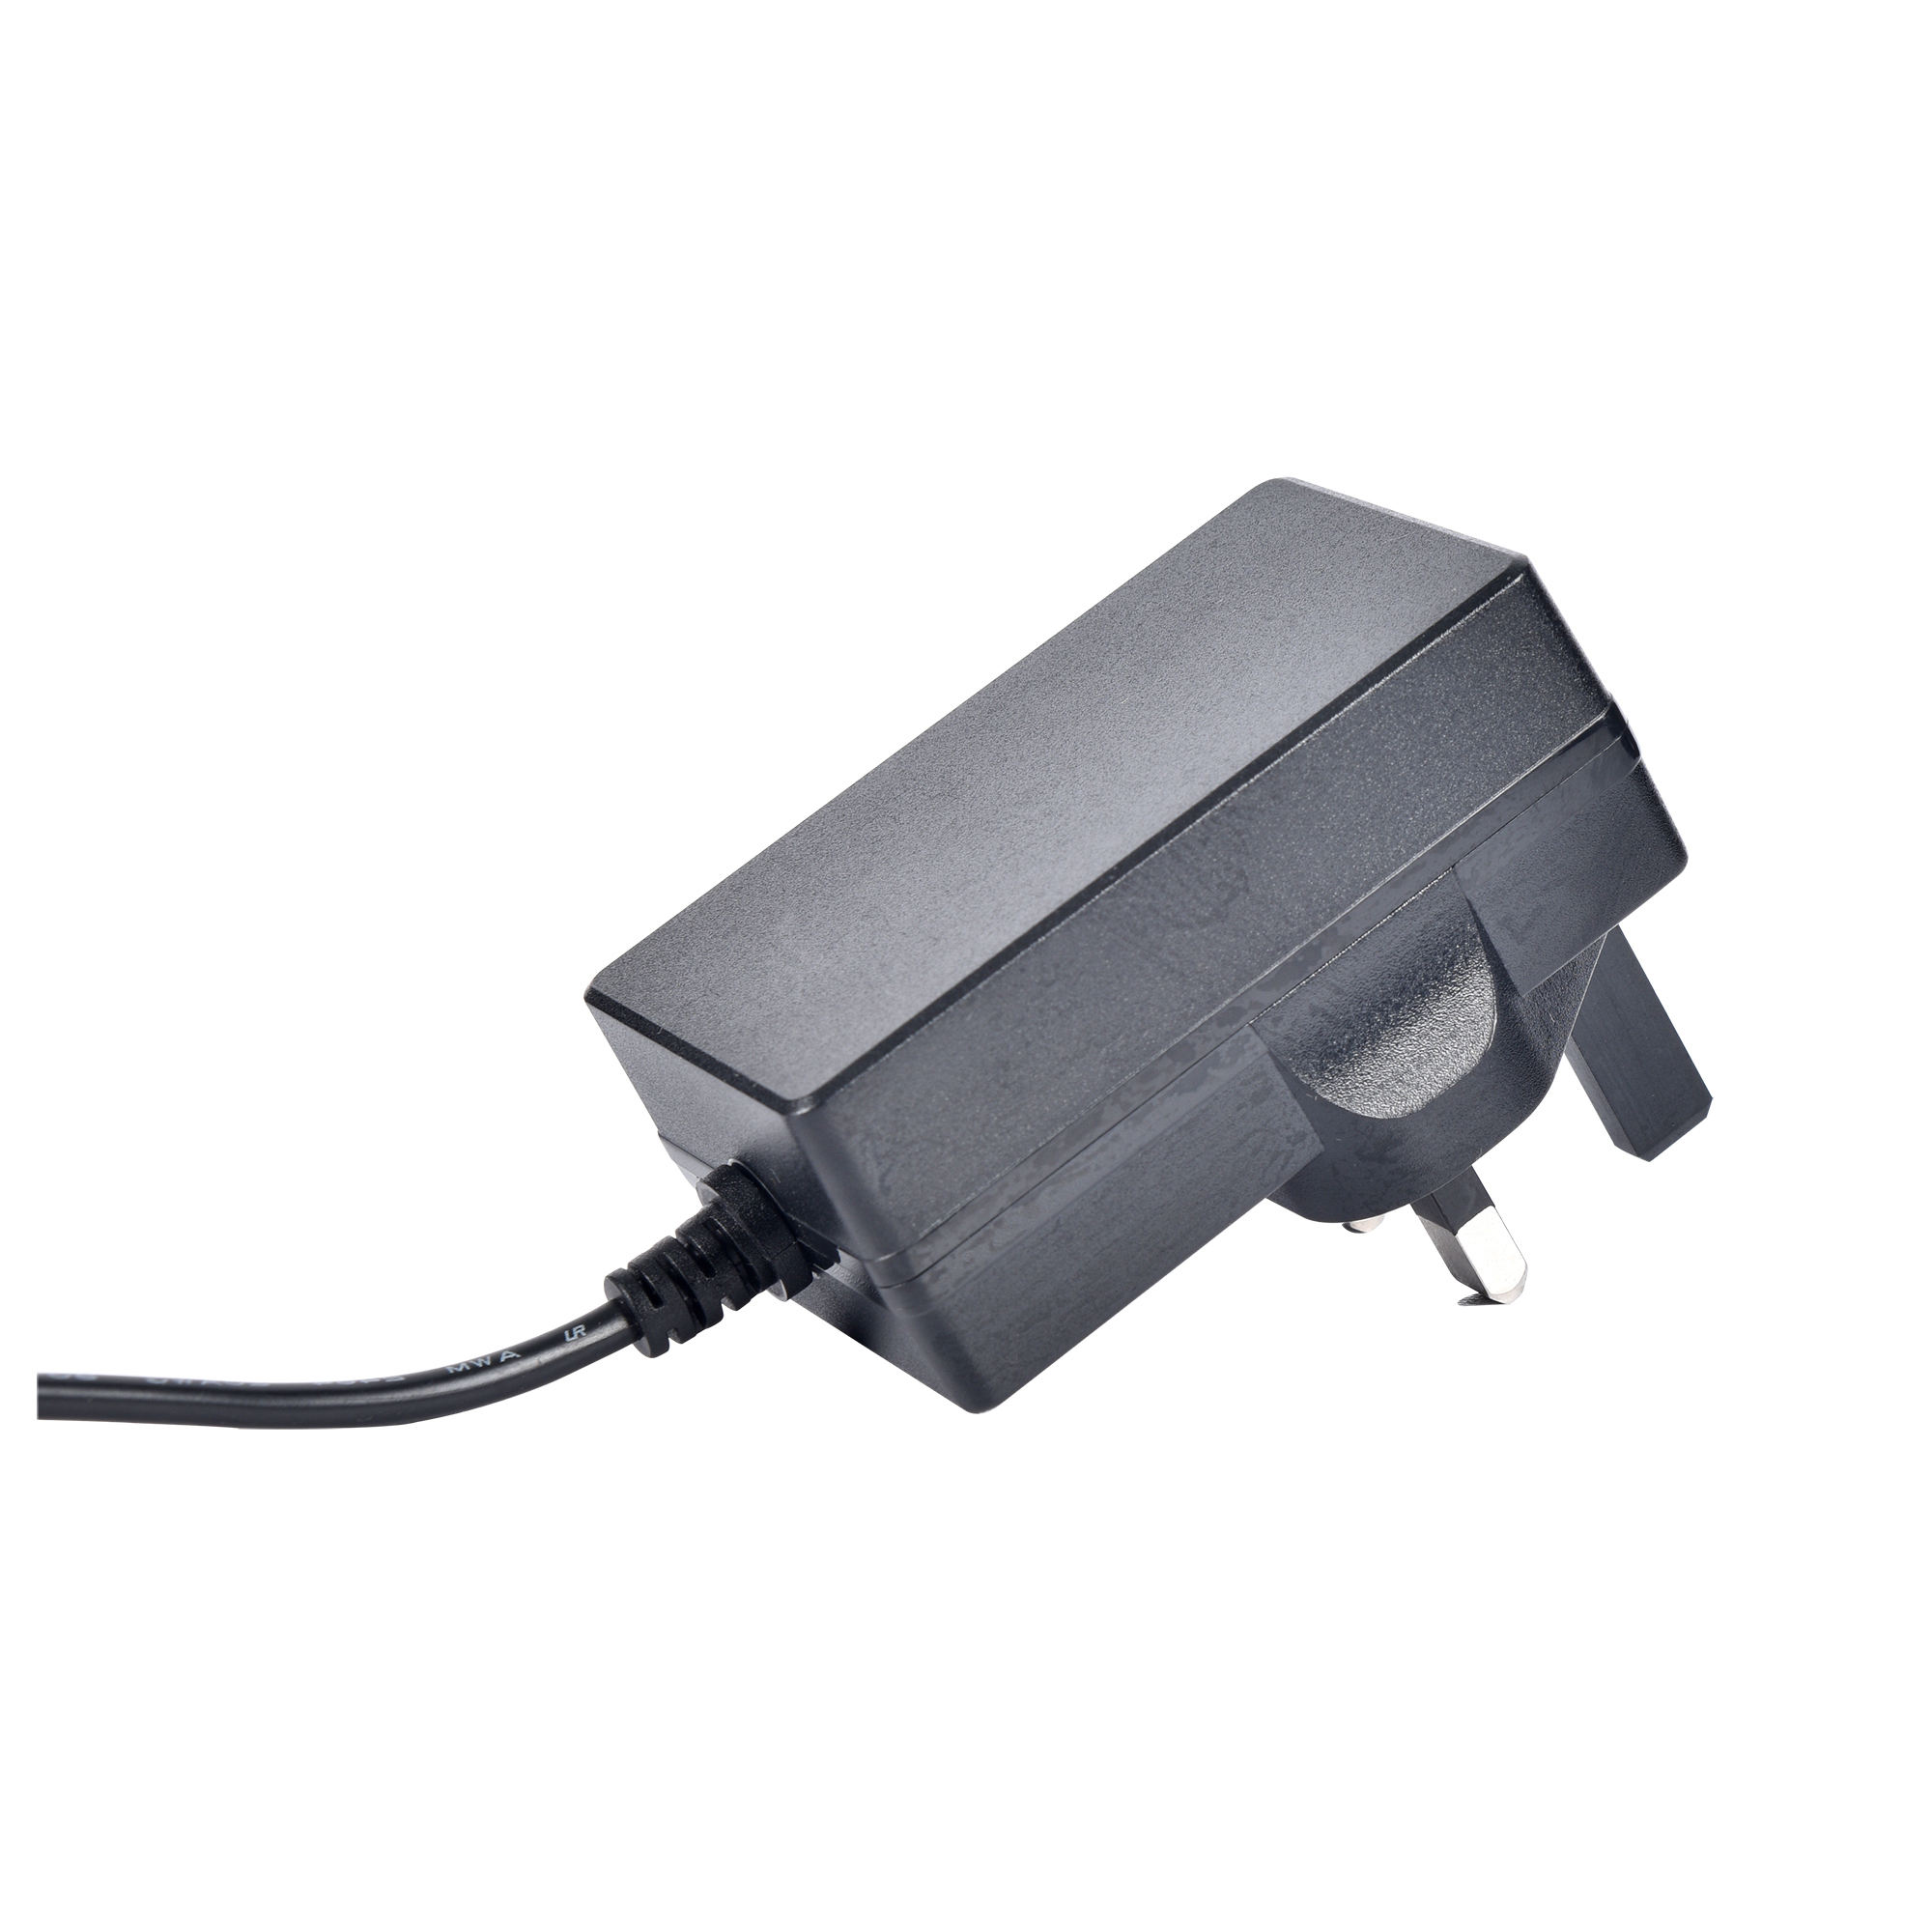 5v 9v 12v 15v 19v 24v 1a 1.5a 2a 2.5a 3a 4a UK SAA EU US plug ac dc power adapter voor luchtbevochtiger router speaker camera massager